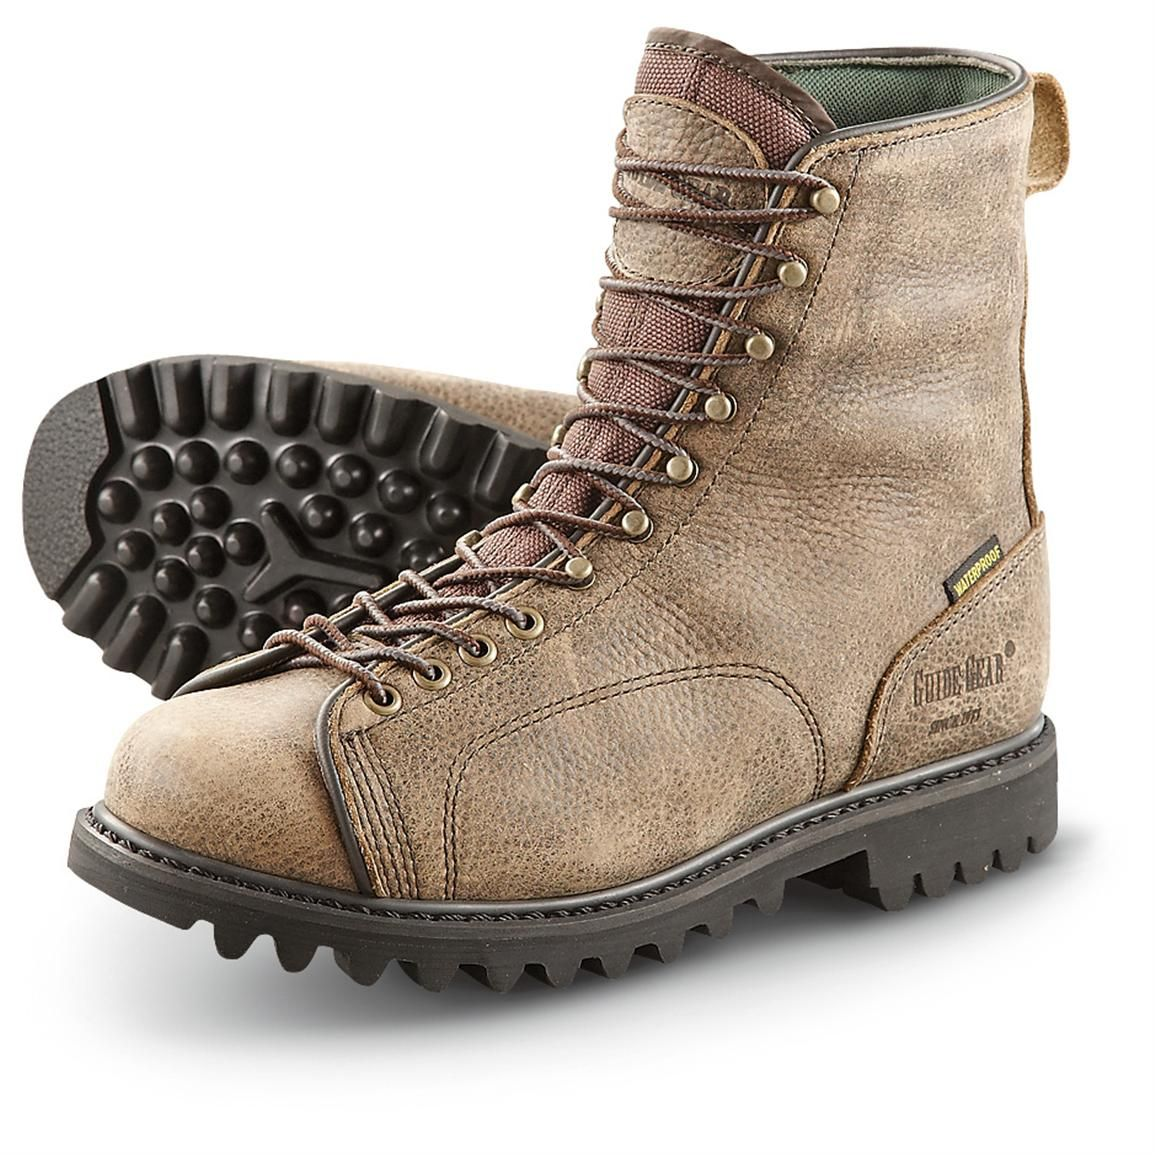 mens toe lace hunting boot pics | Men's Guide Gear® Waterproof 400 ...